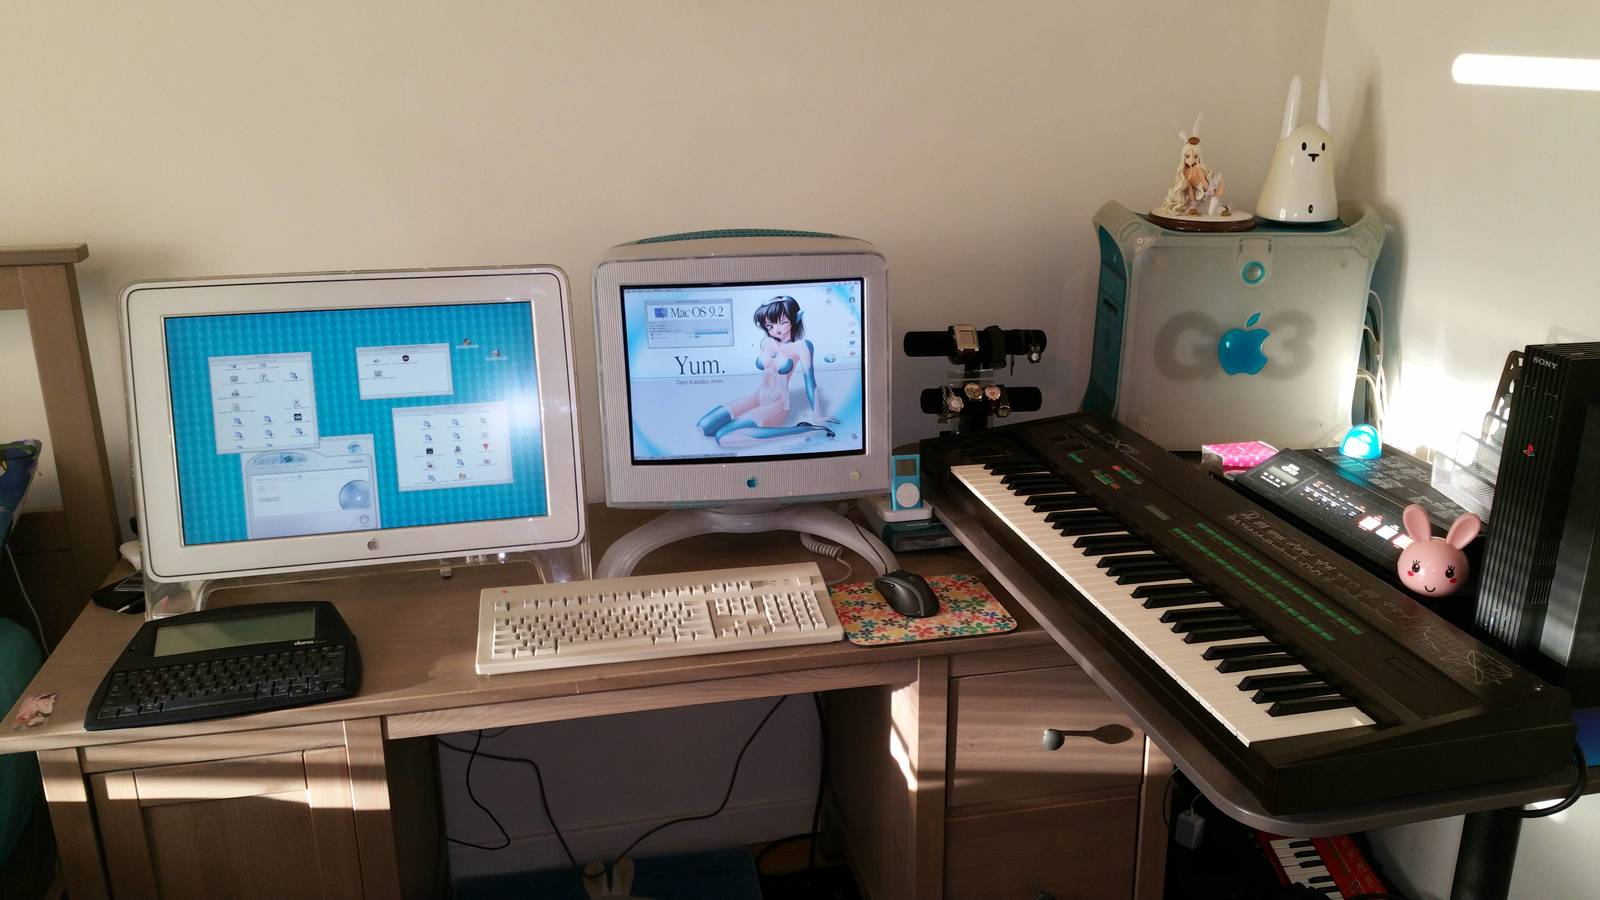 Blue & White Power Macintosh G3 on a desk with two monitors, Extended II keyboard, and Yamaha DX7